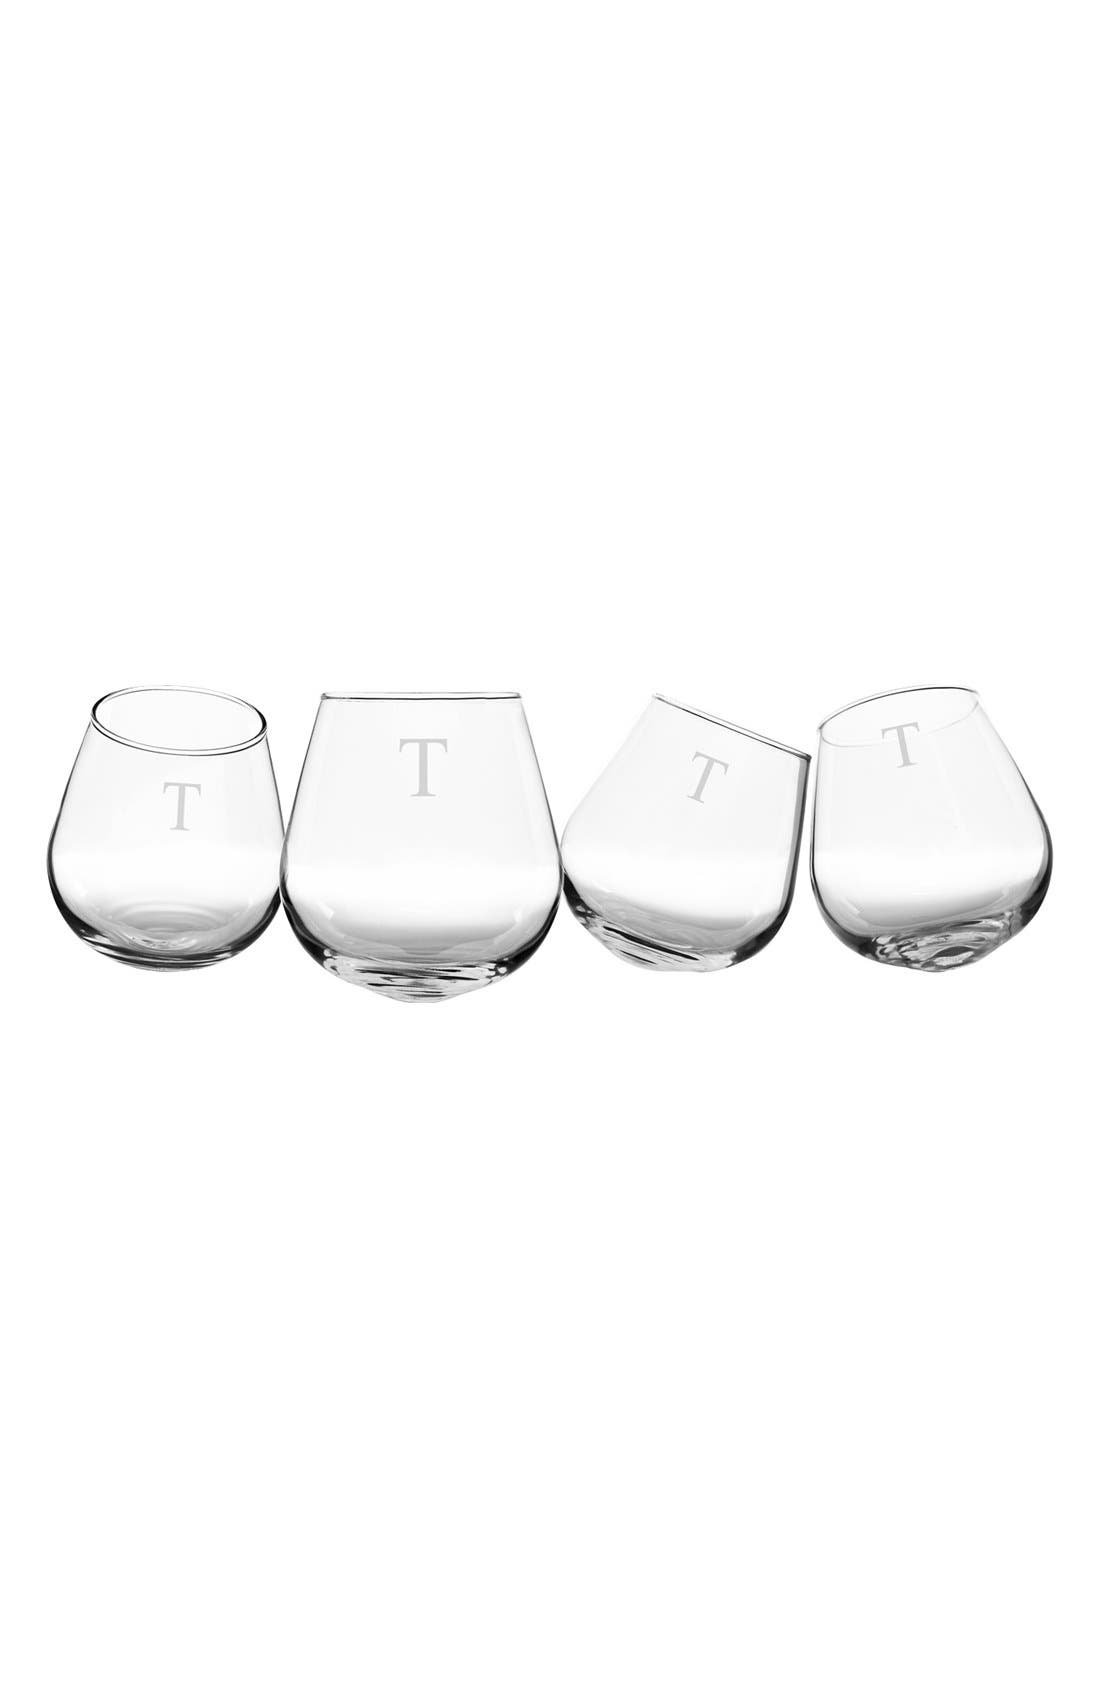 Monogram Tipsy Set of 4 Wine Glasses,                             Main thumbnail 1, color,                             Clear T